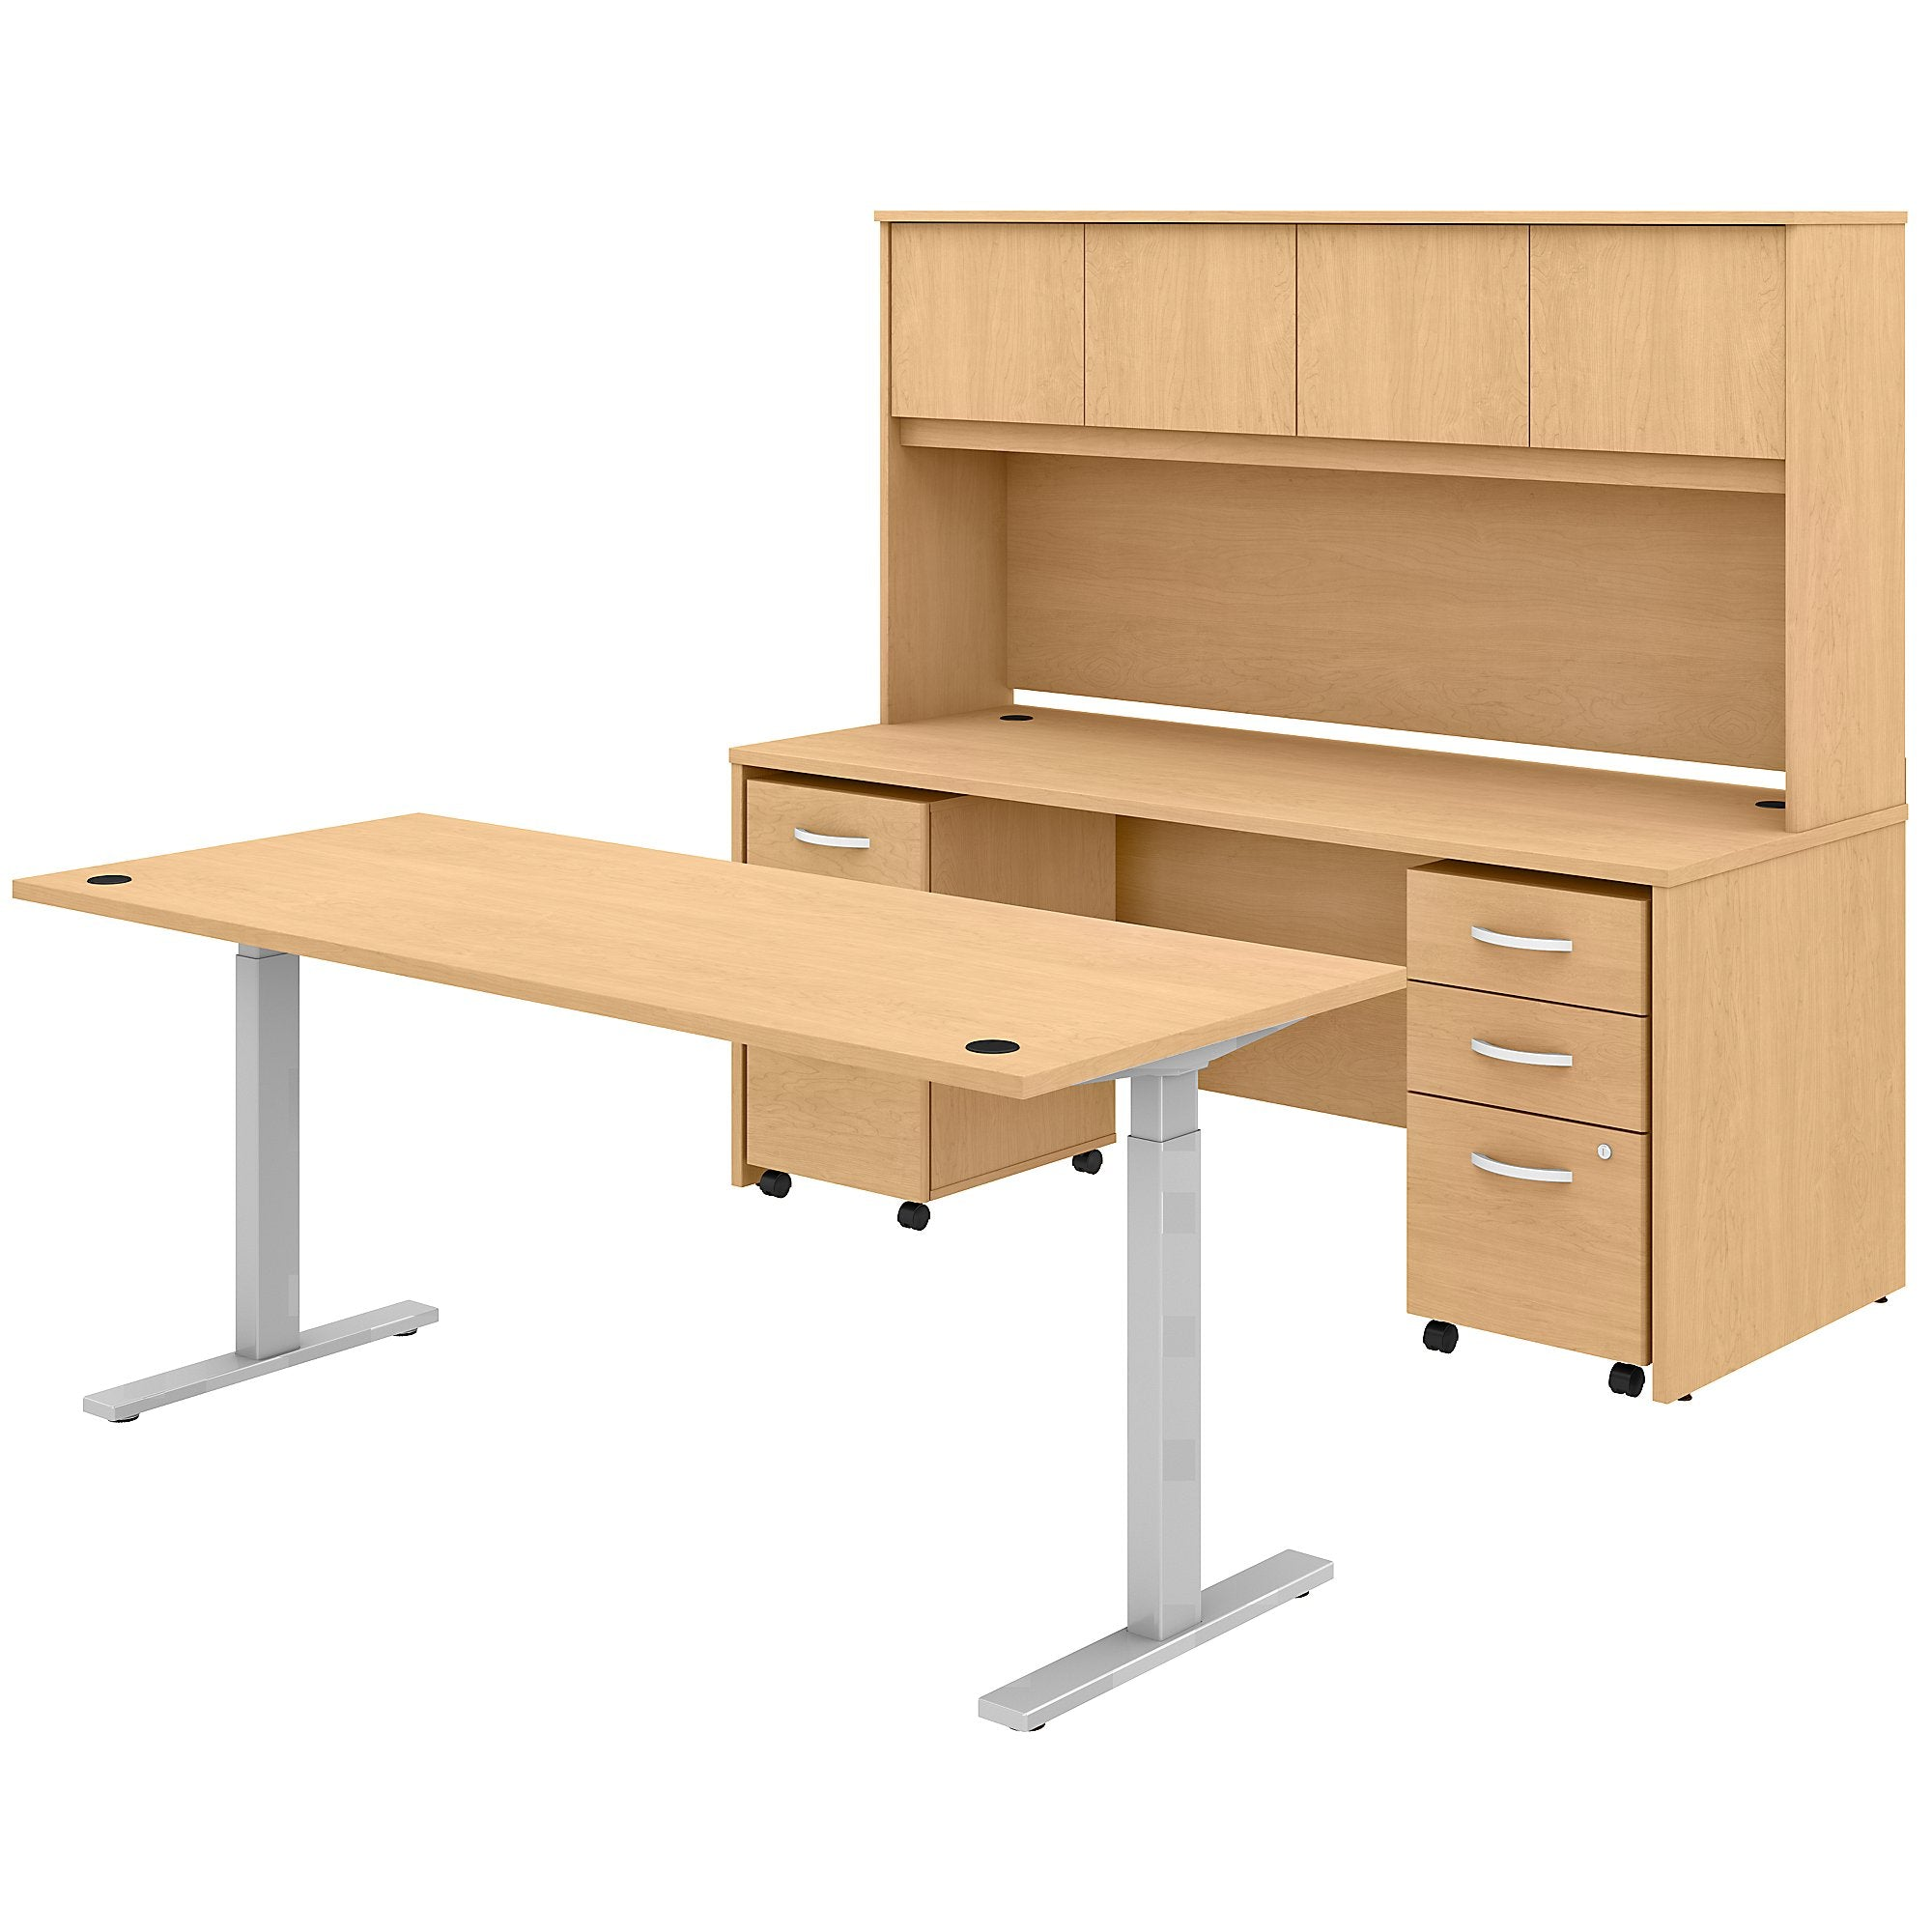 Adjustable Standing Desk Credenza with Hutch & Mobile File Cabinets